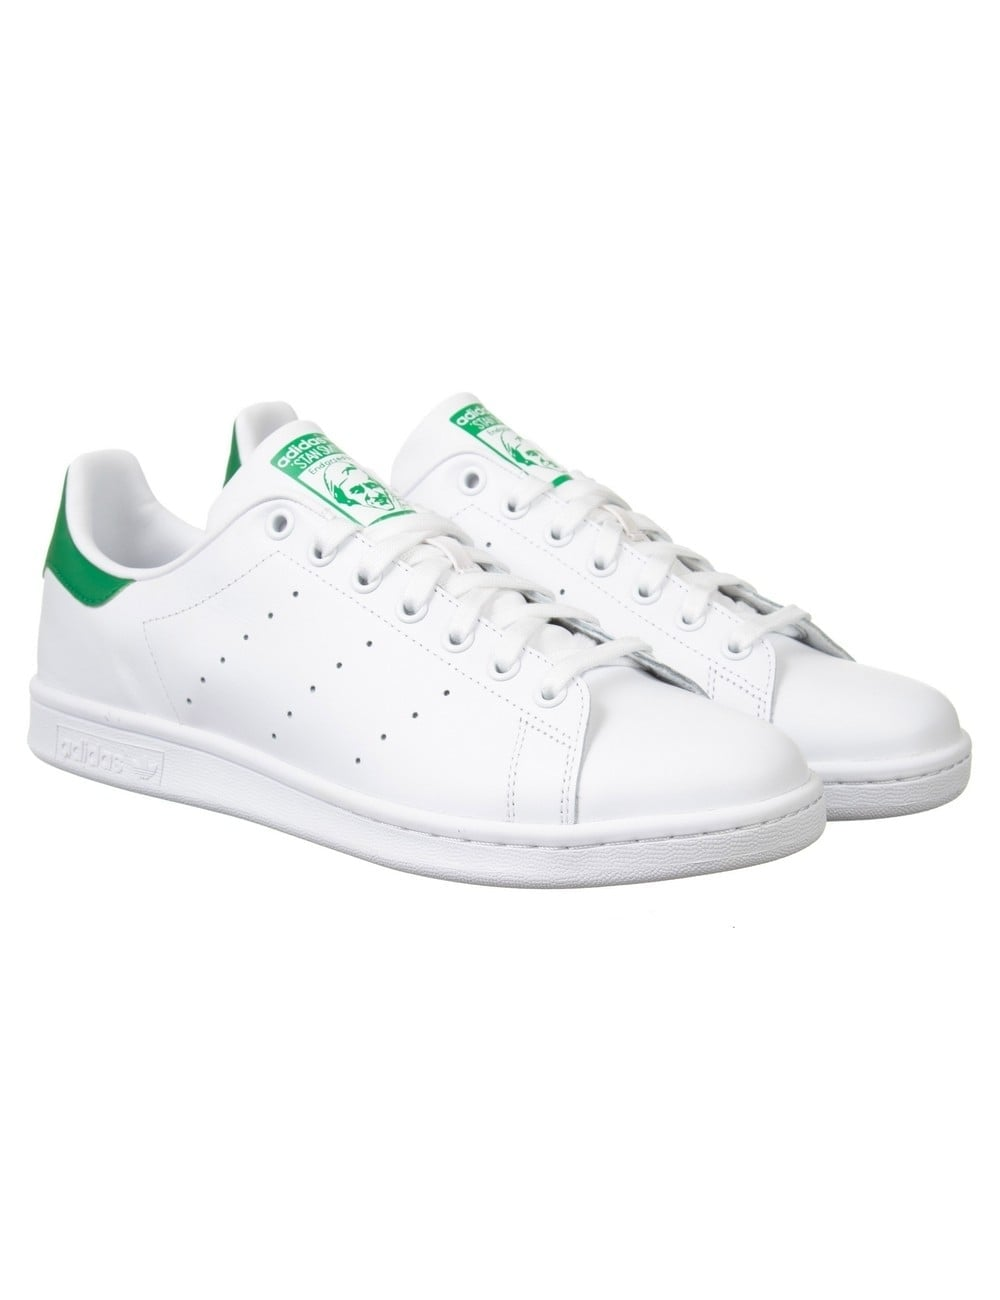 new concept a1c43 317e7 Stan Smith Shoes - White/Green